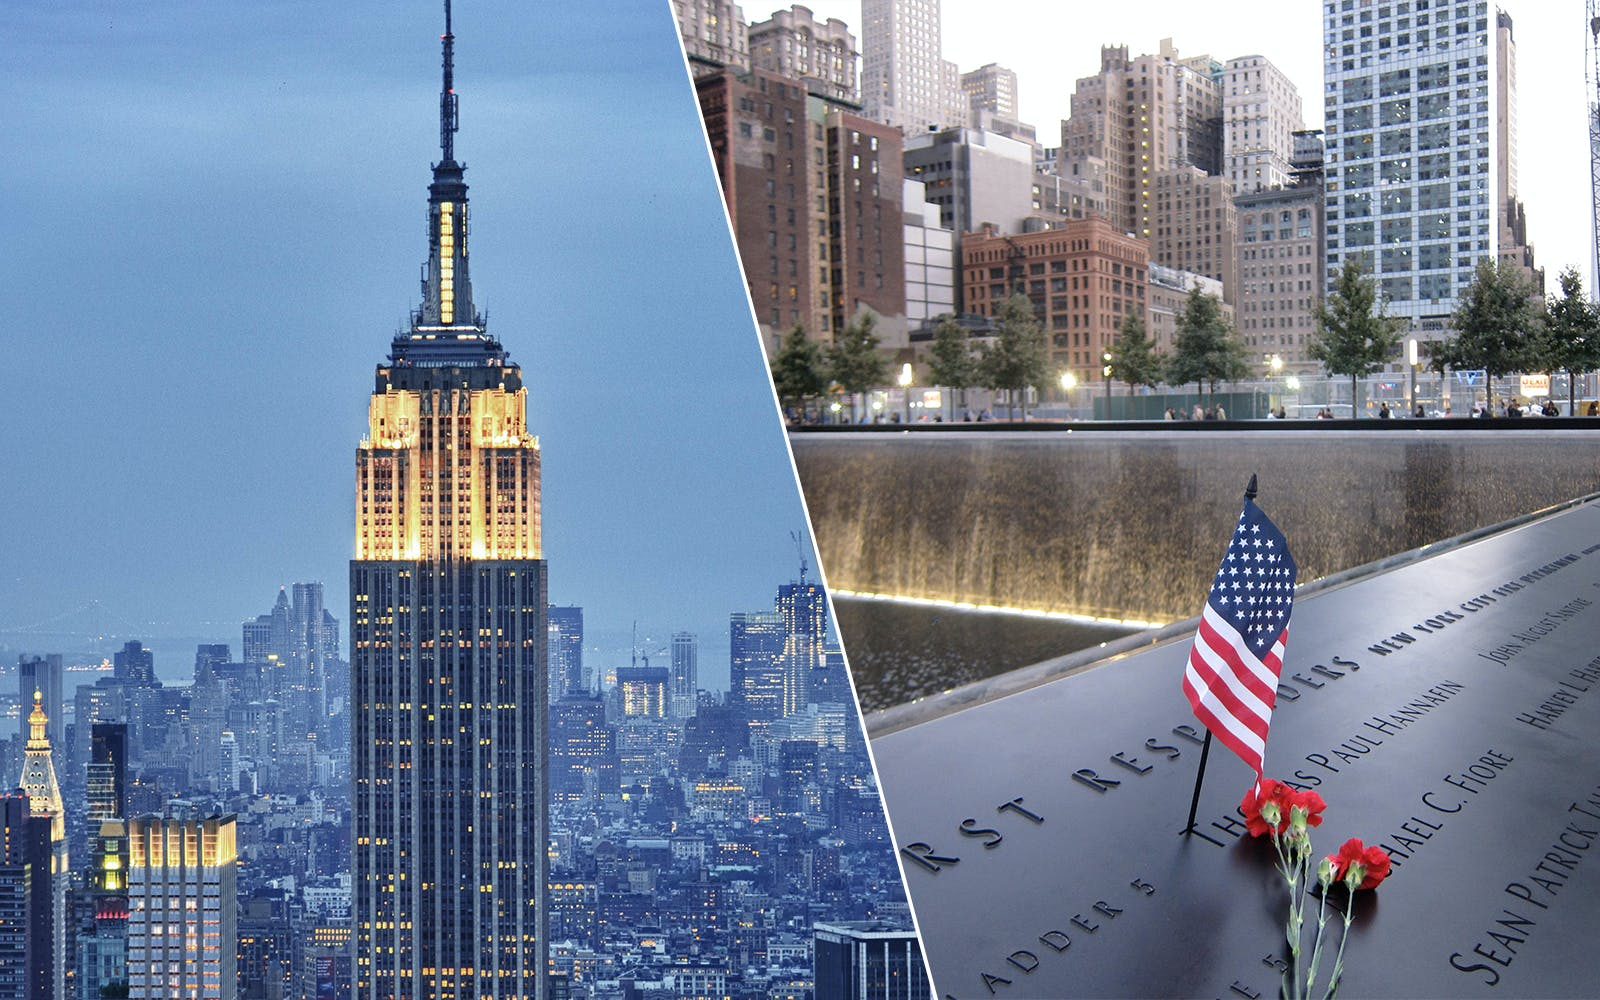 Skip the Line Empire State Building + 9/11 Memorial Museum Tickets